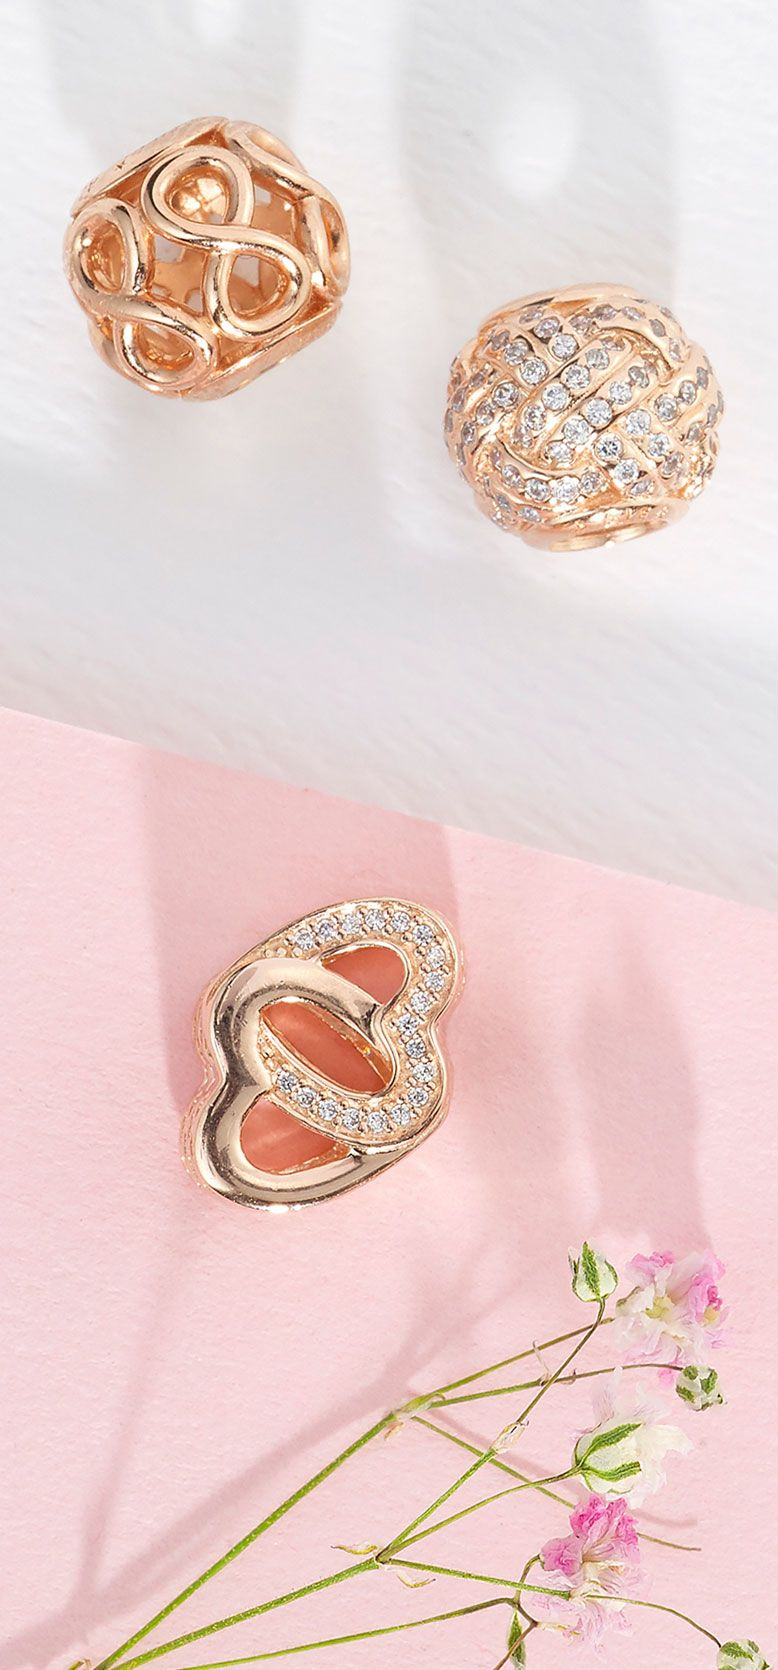 Charming pandora rose charms are the perfect addon for your day to